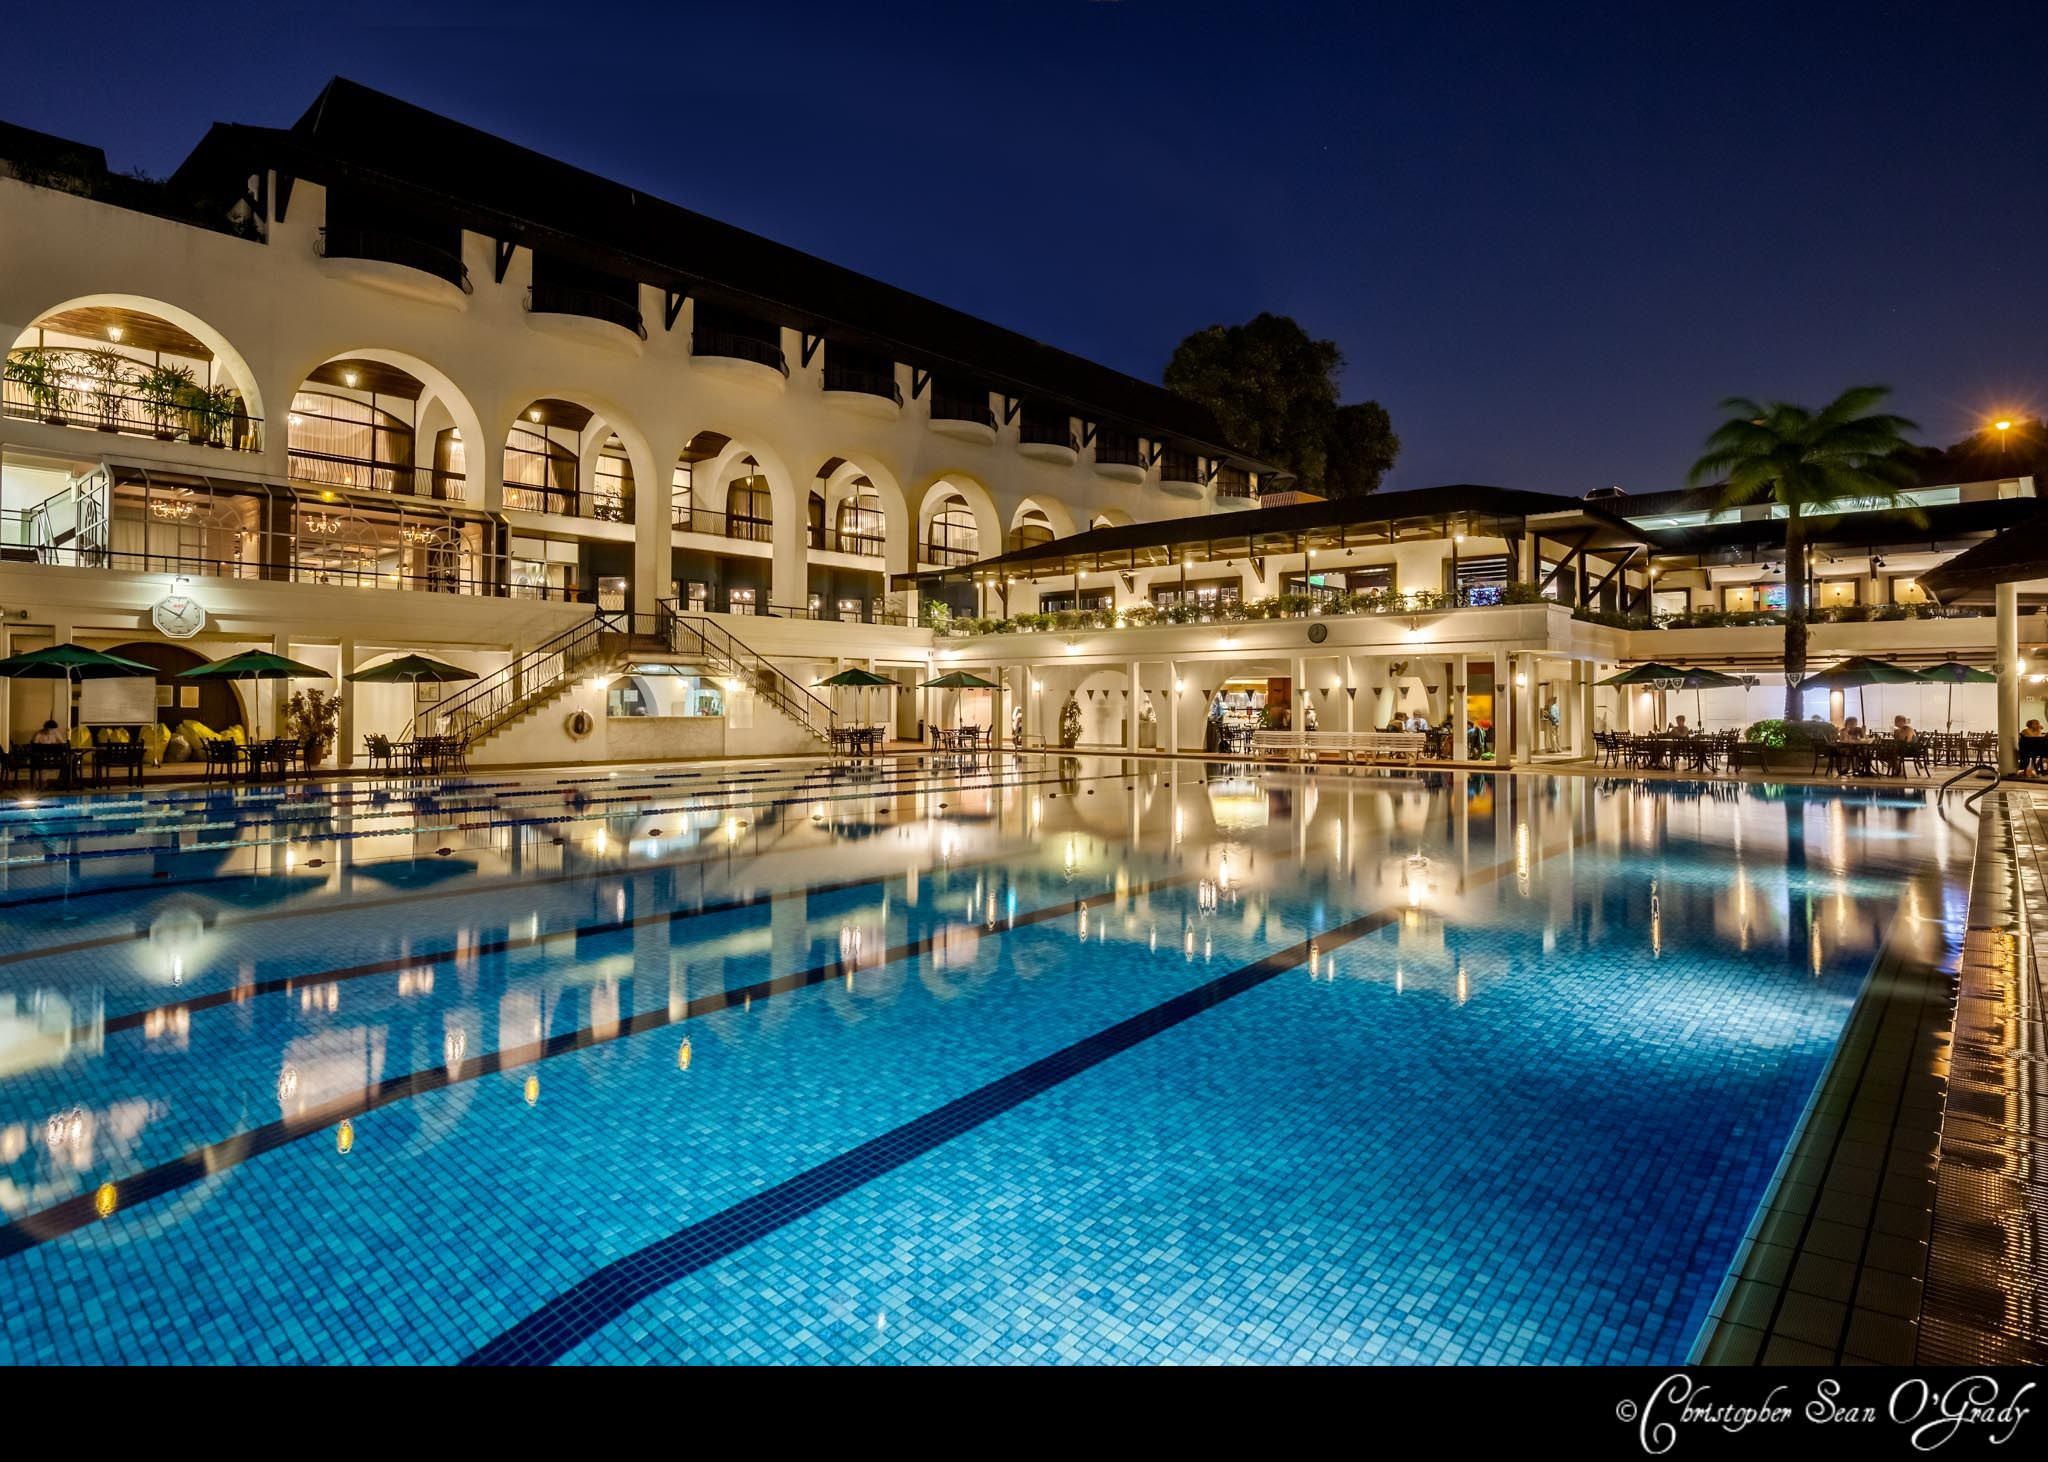 Architectural Photography Tanglin Club Singapore Night Pool